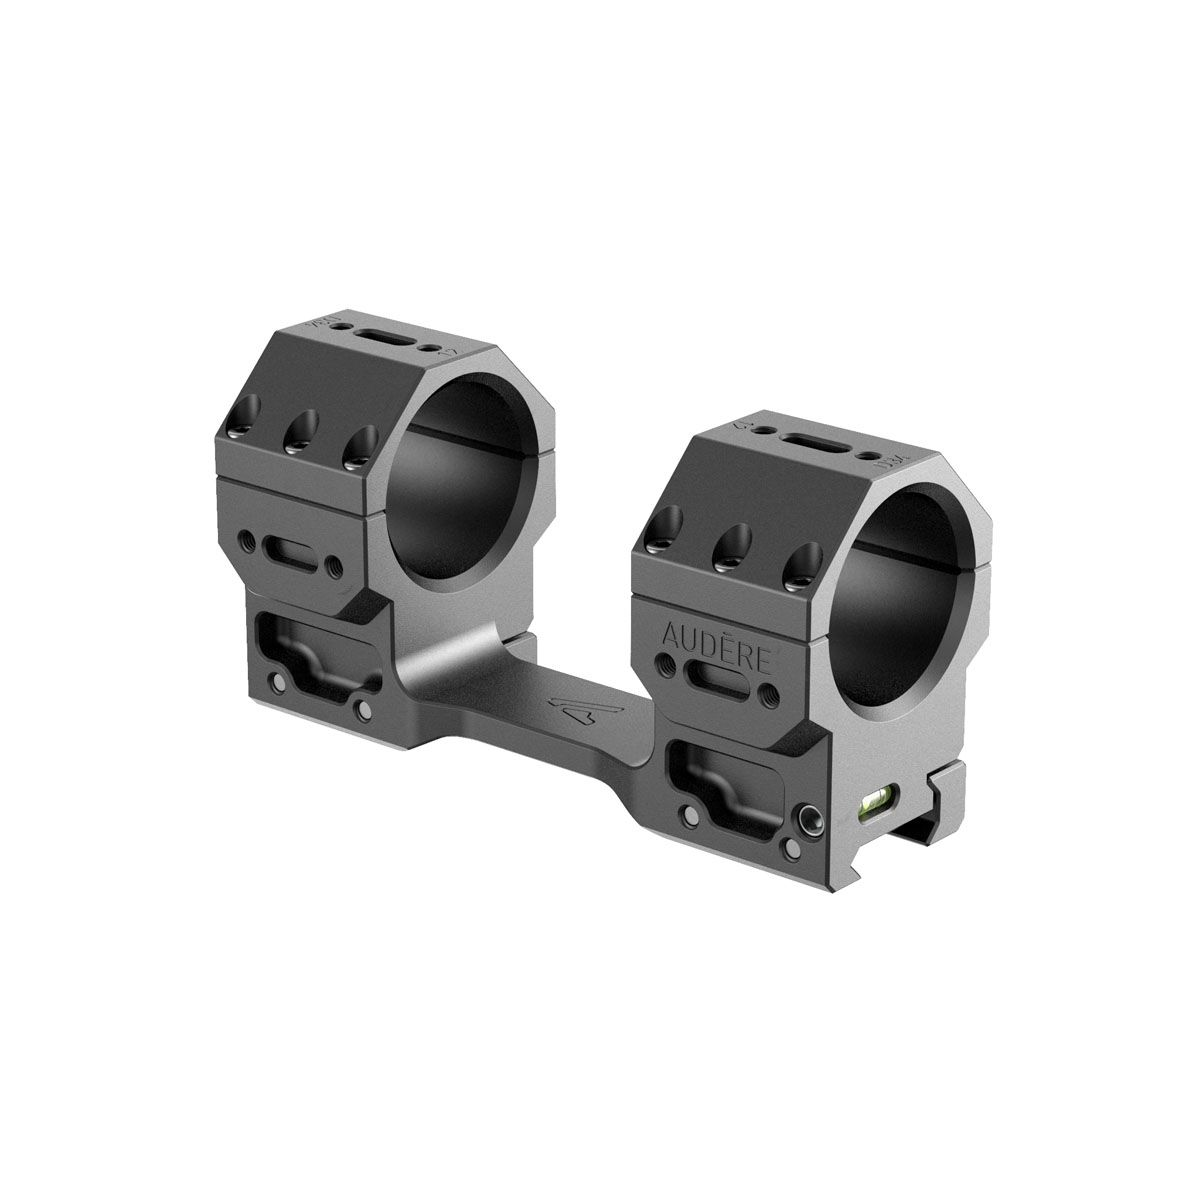 "Audere - Adversus Scope Mount - 34 mm - High (38mm/1.5"") - 0MOA"